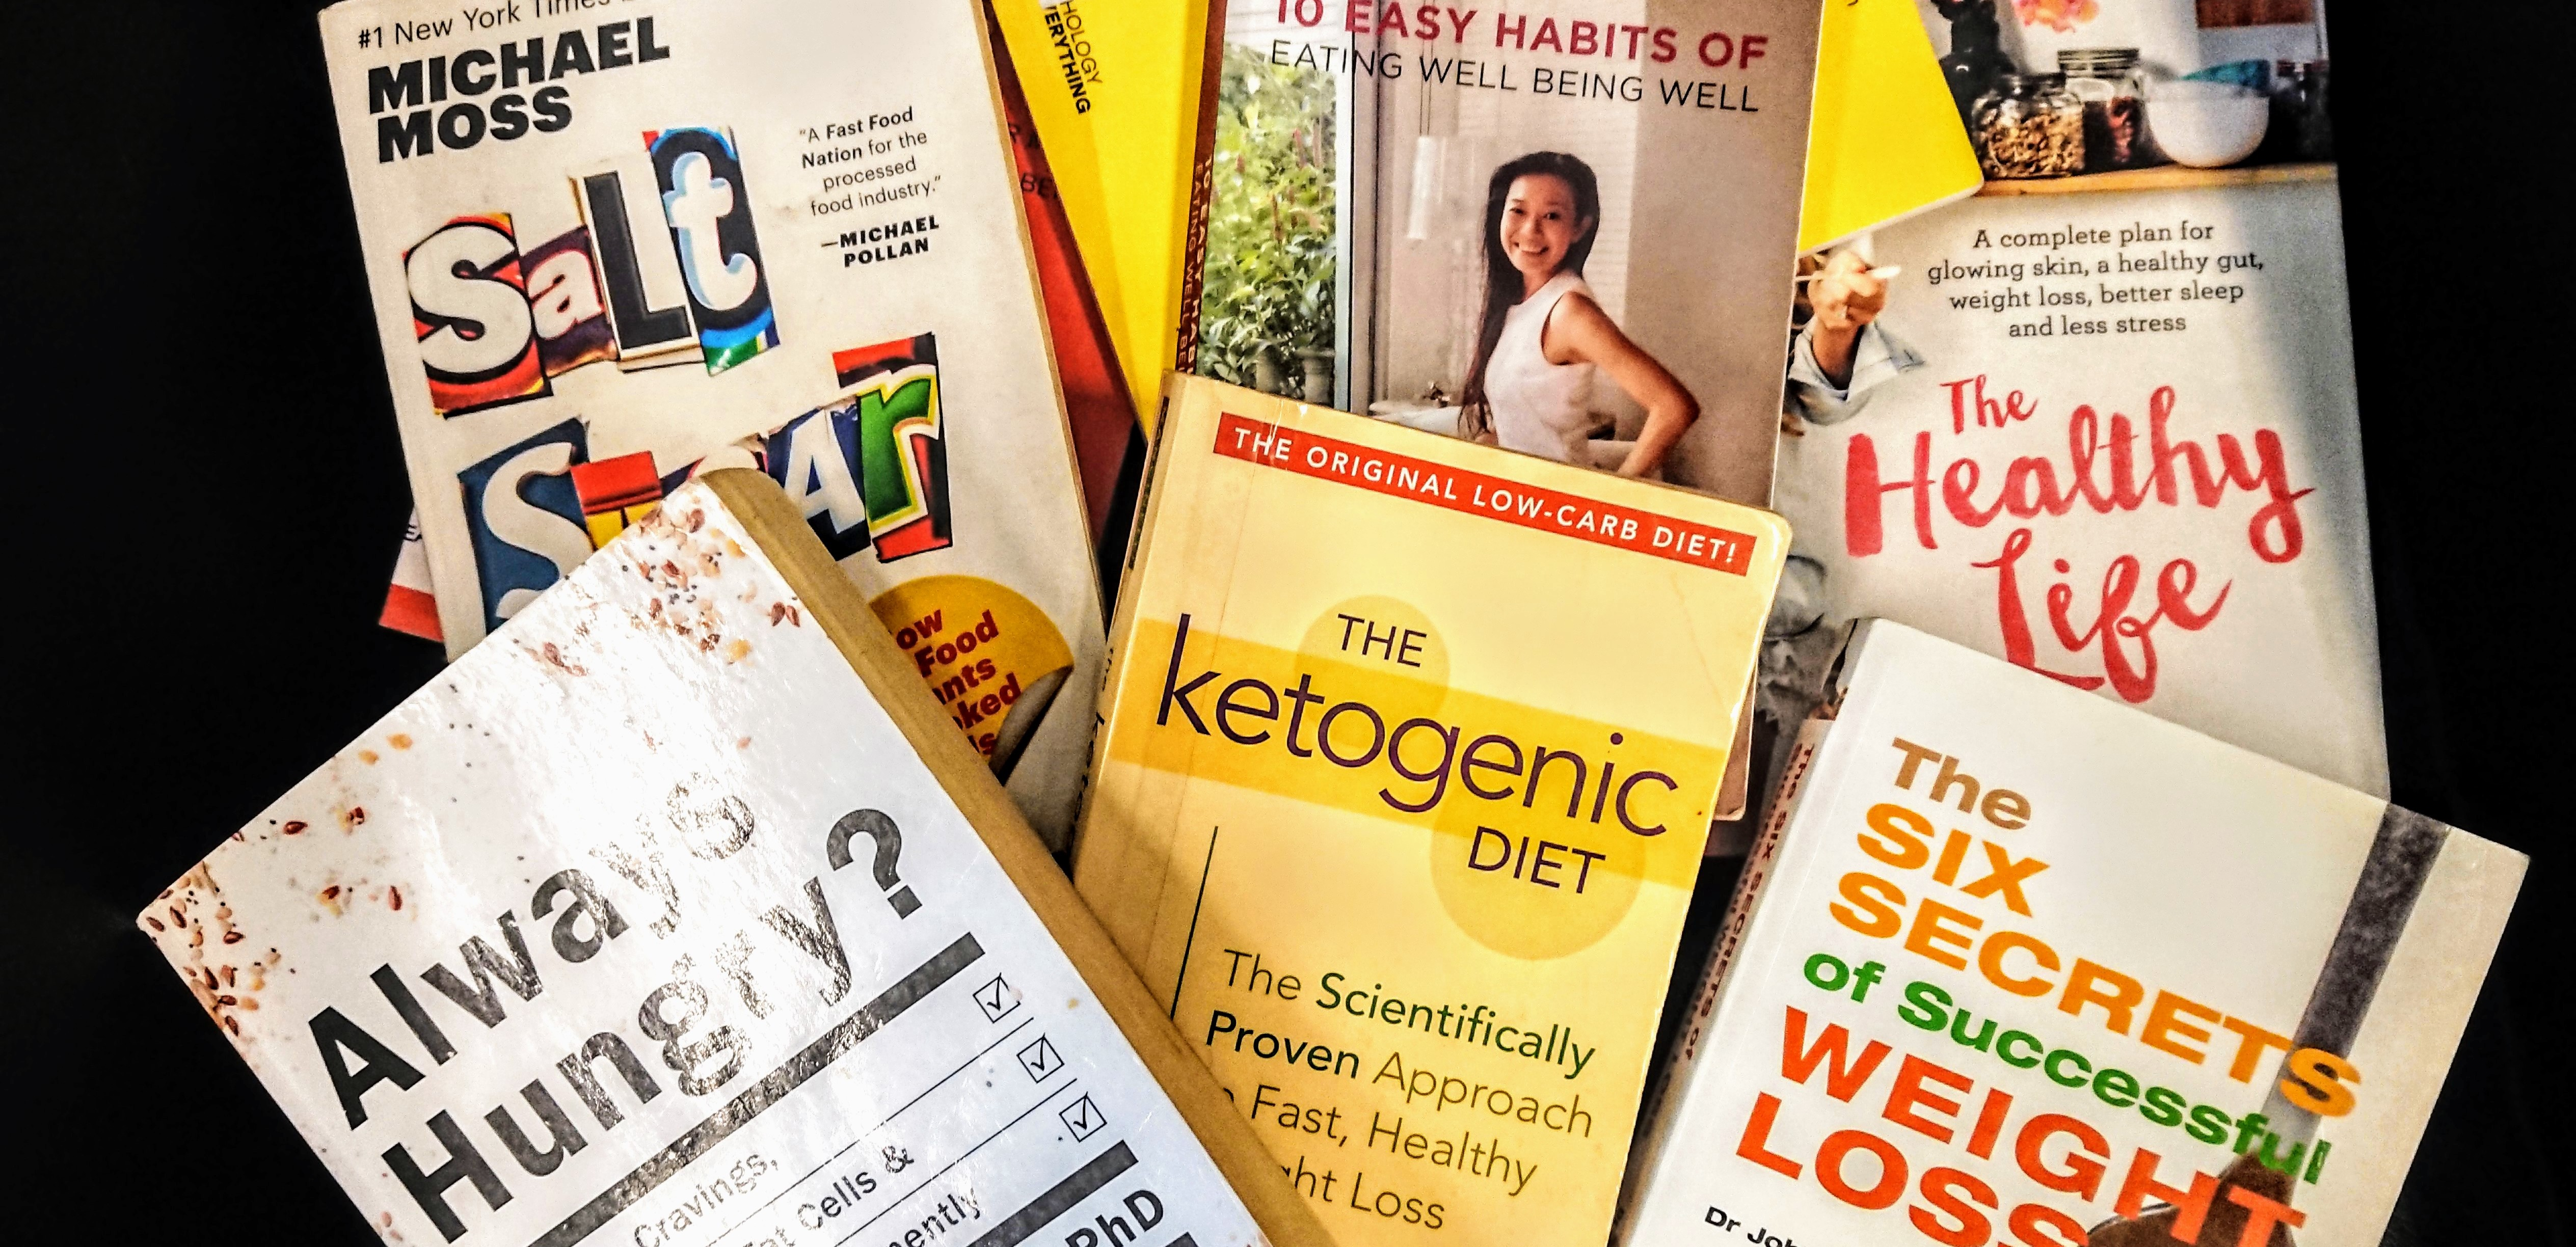 books on weight-loss diet plans